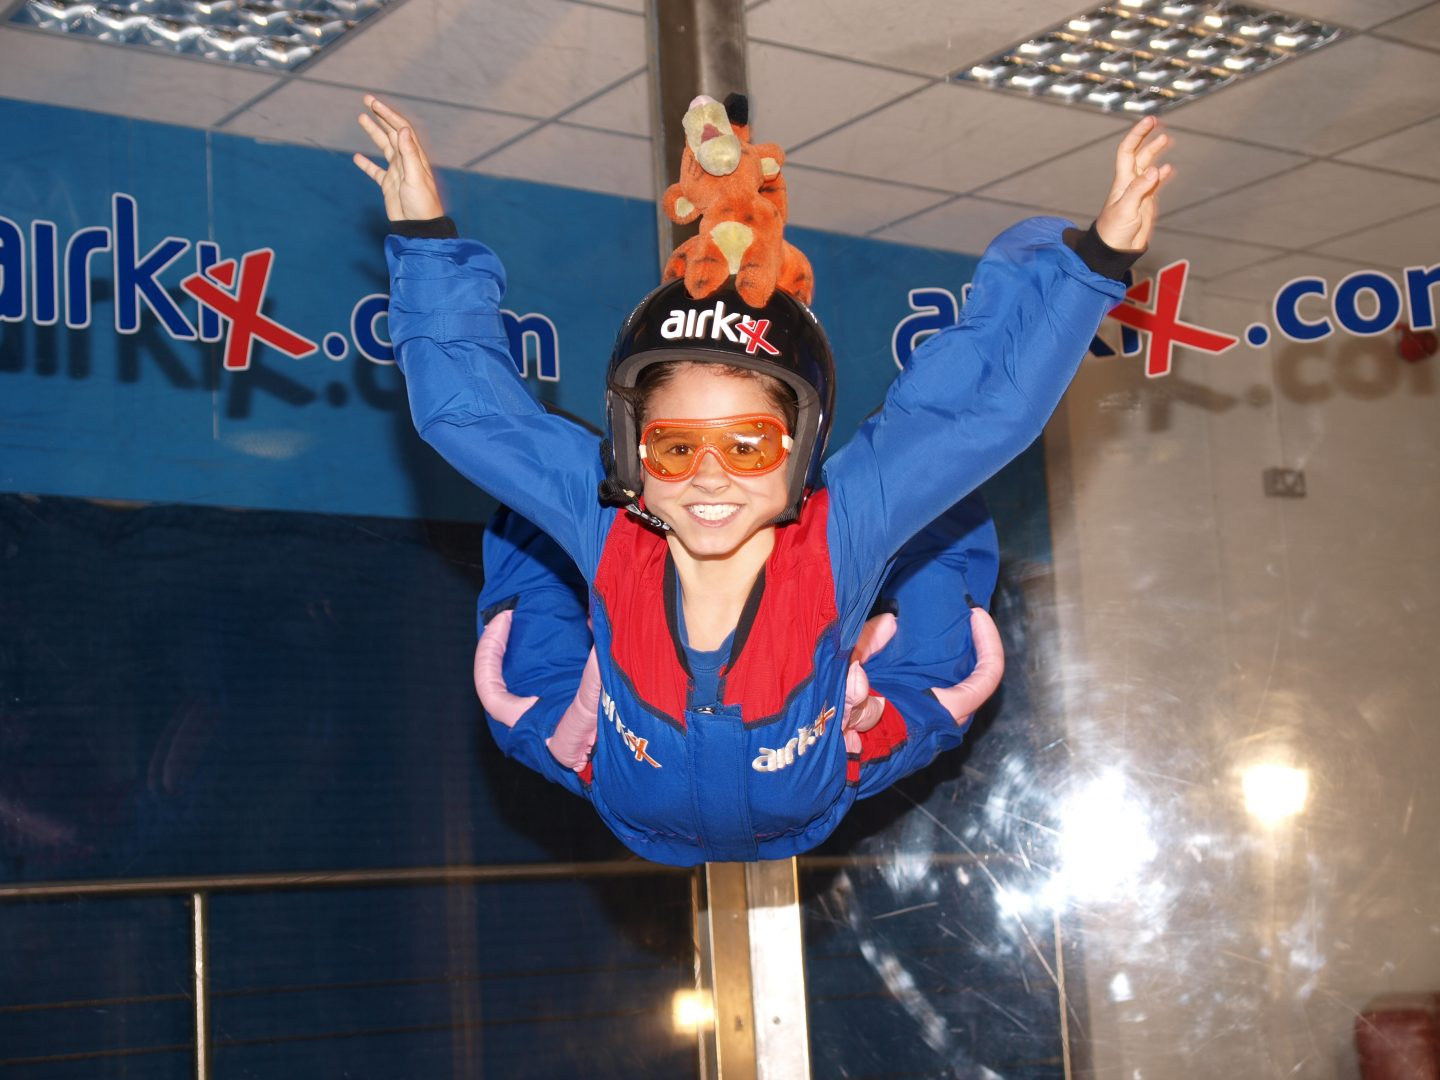 Indoor Skydiving: Teaching BB to fly with Airkix